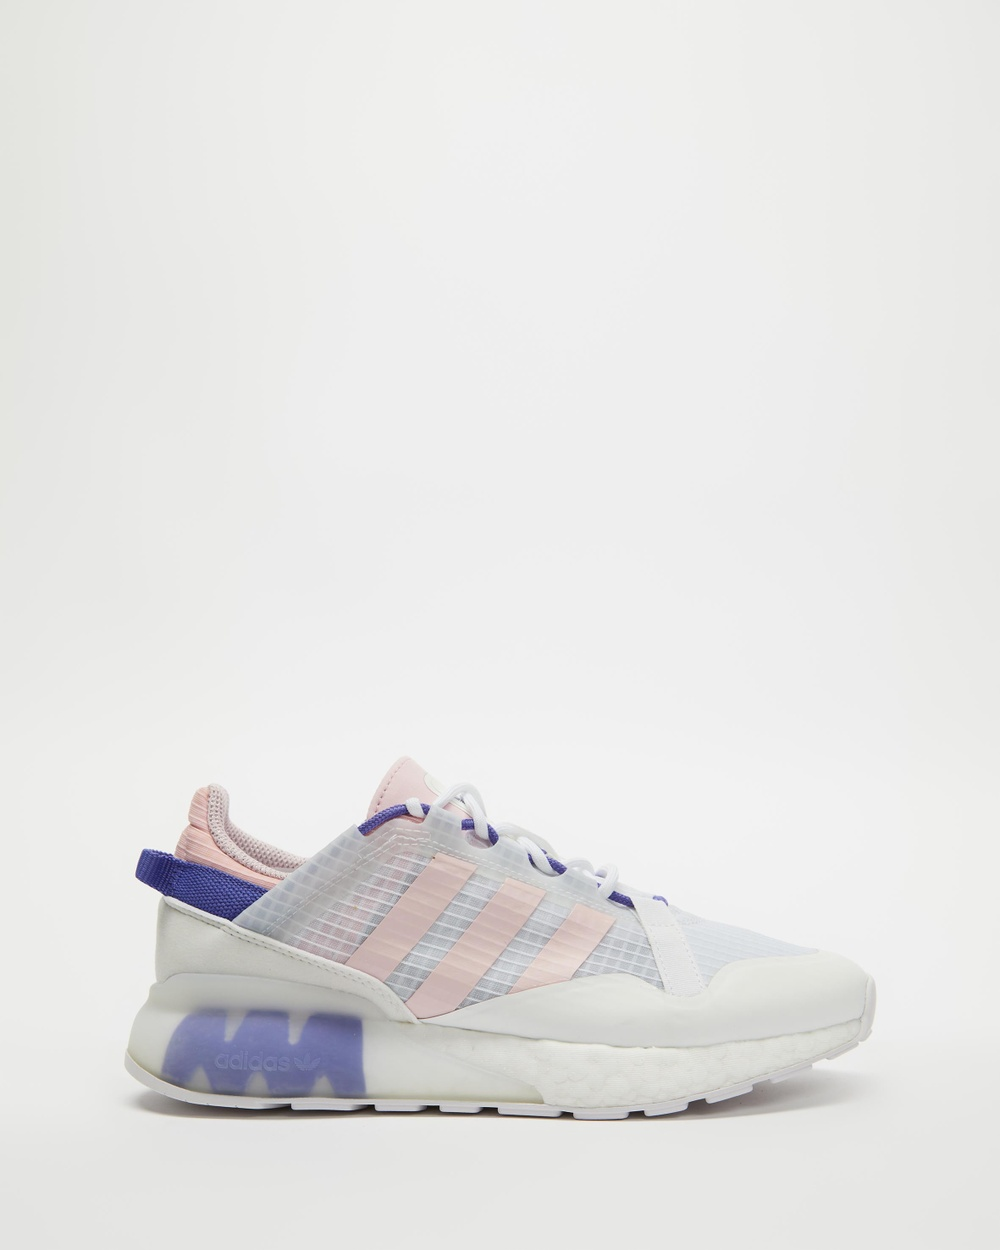 adidas Originals Zx 2K Boost Pure Women's Performance Shoes White, Clear Pink & Purple